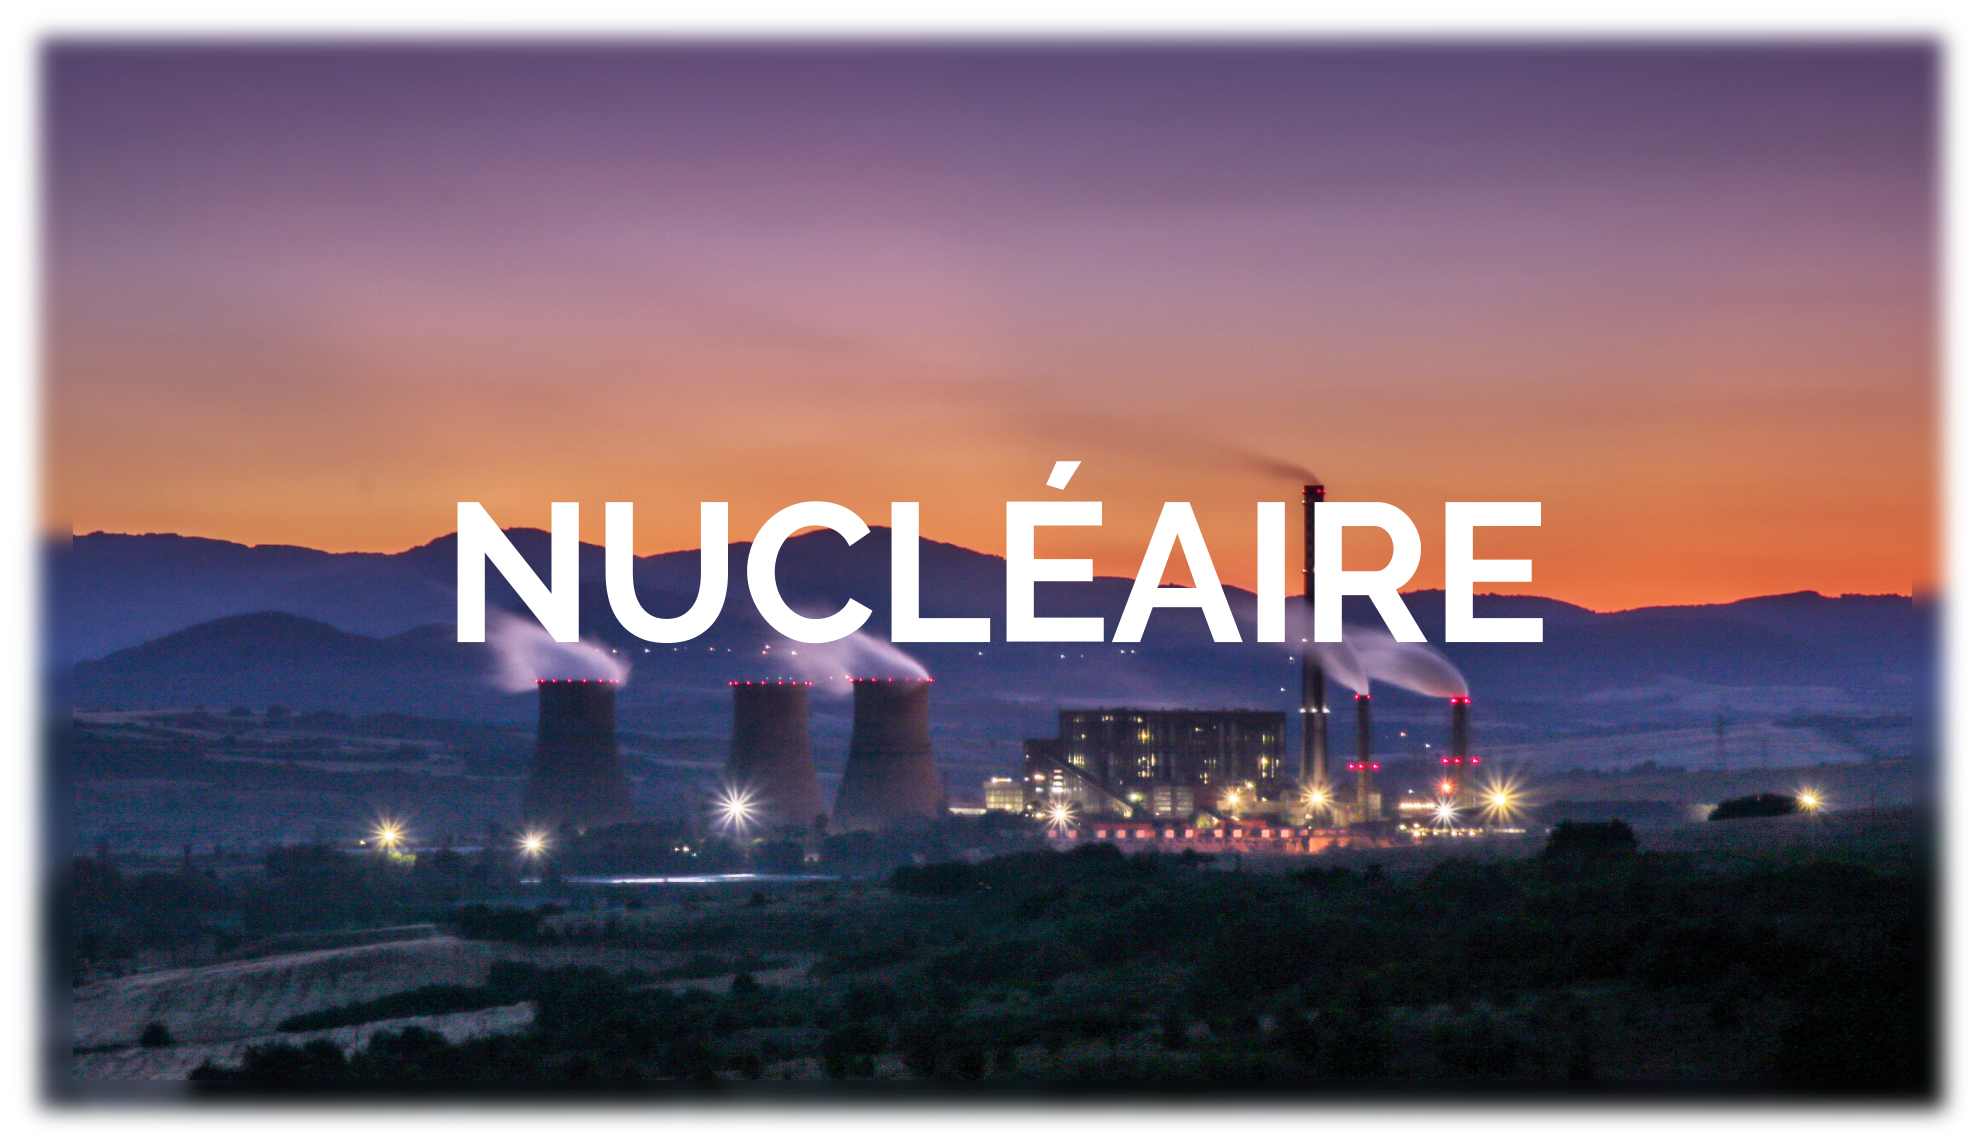 accueil-home-claimaway-litiges-claims-Dispute-Litigation-nucleaire